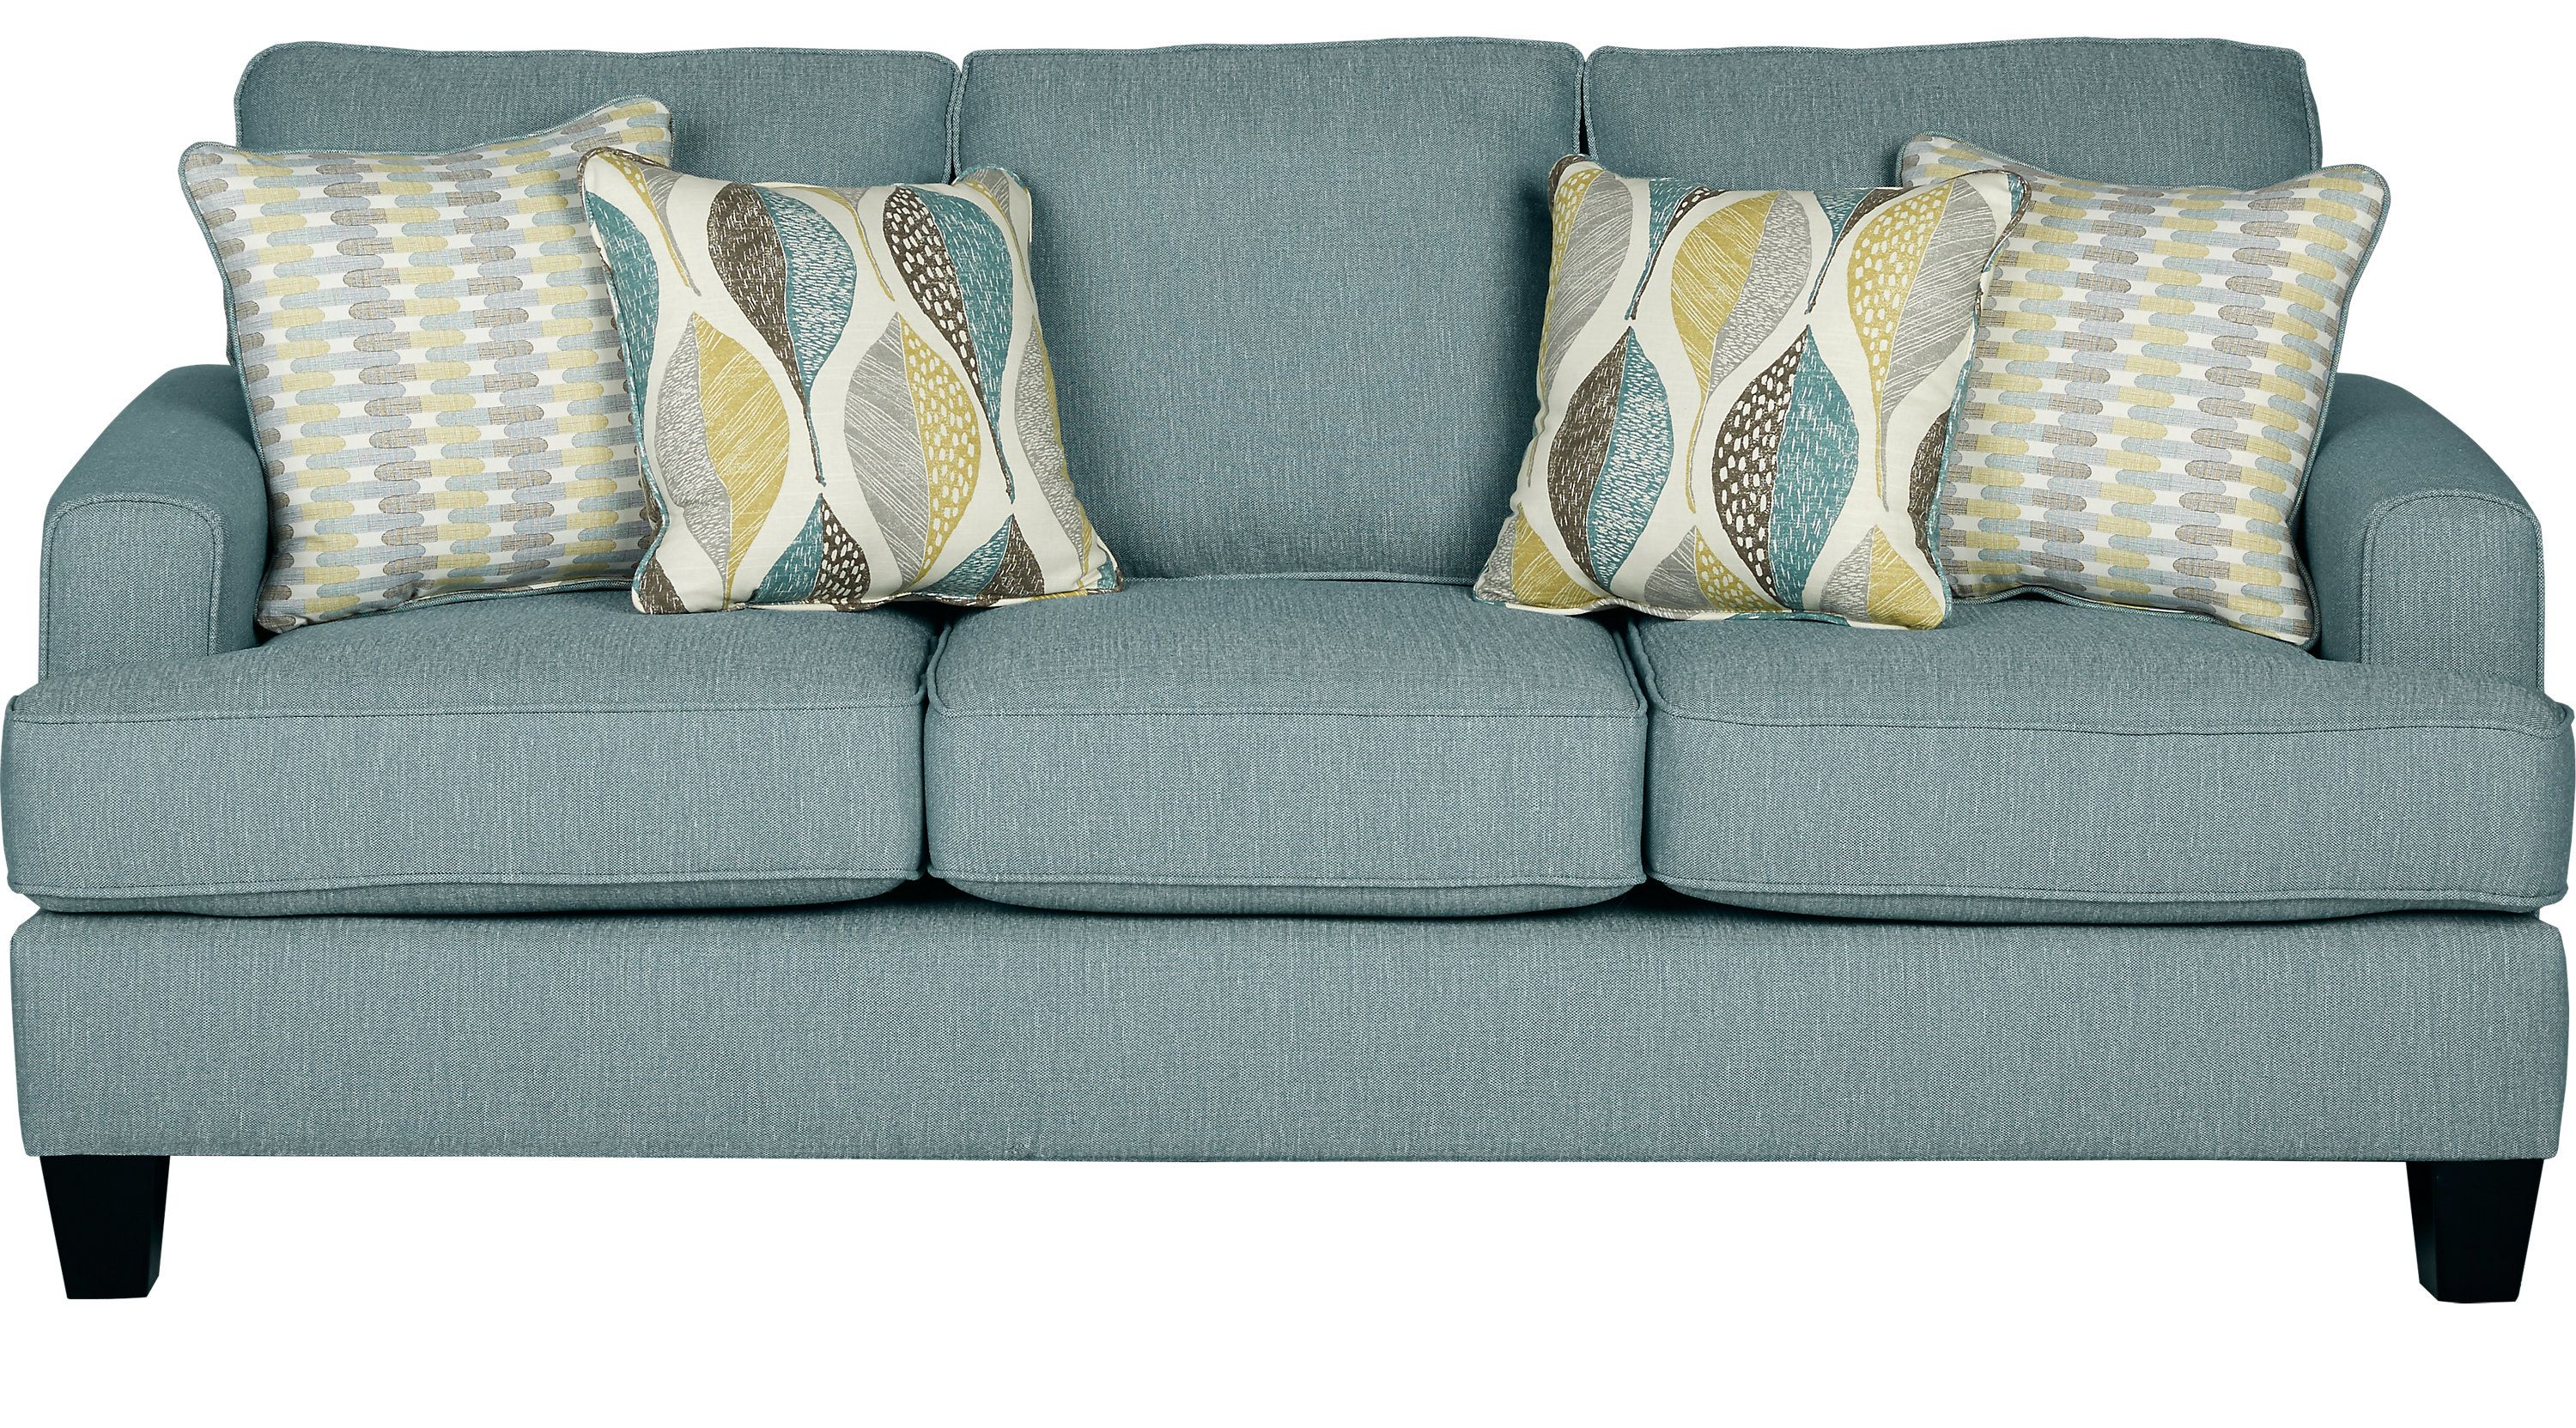 Sofas - Rooms To Go - Cypress Gardens Blue Sofa - 10126604 ...